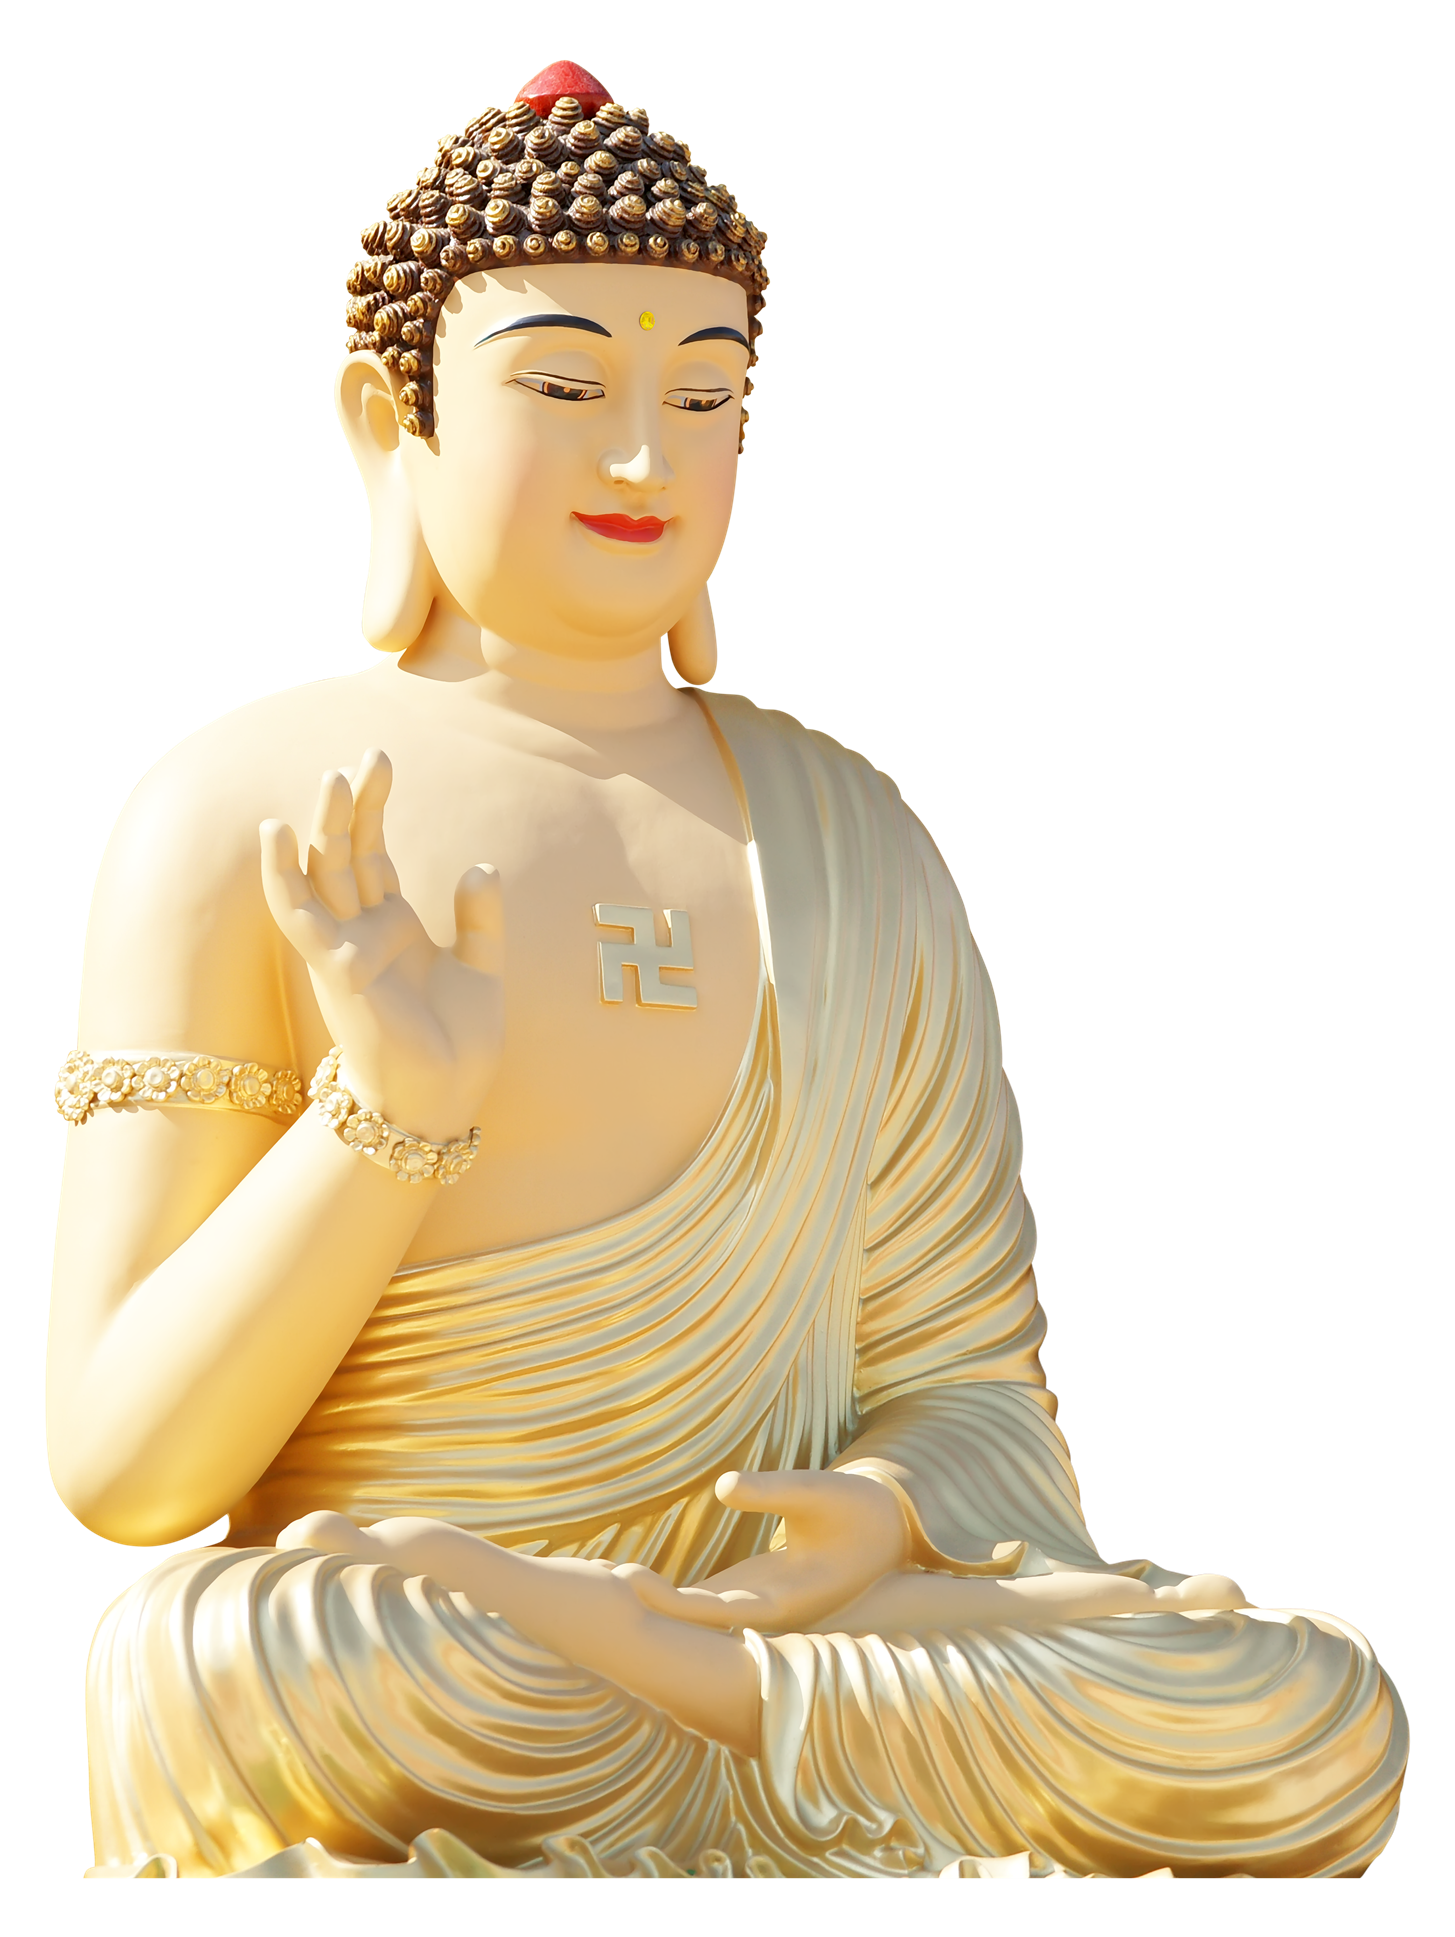 Download transparent hq png. Buddha clipart clear clip art royalty free stock